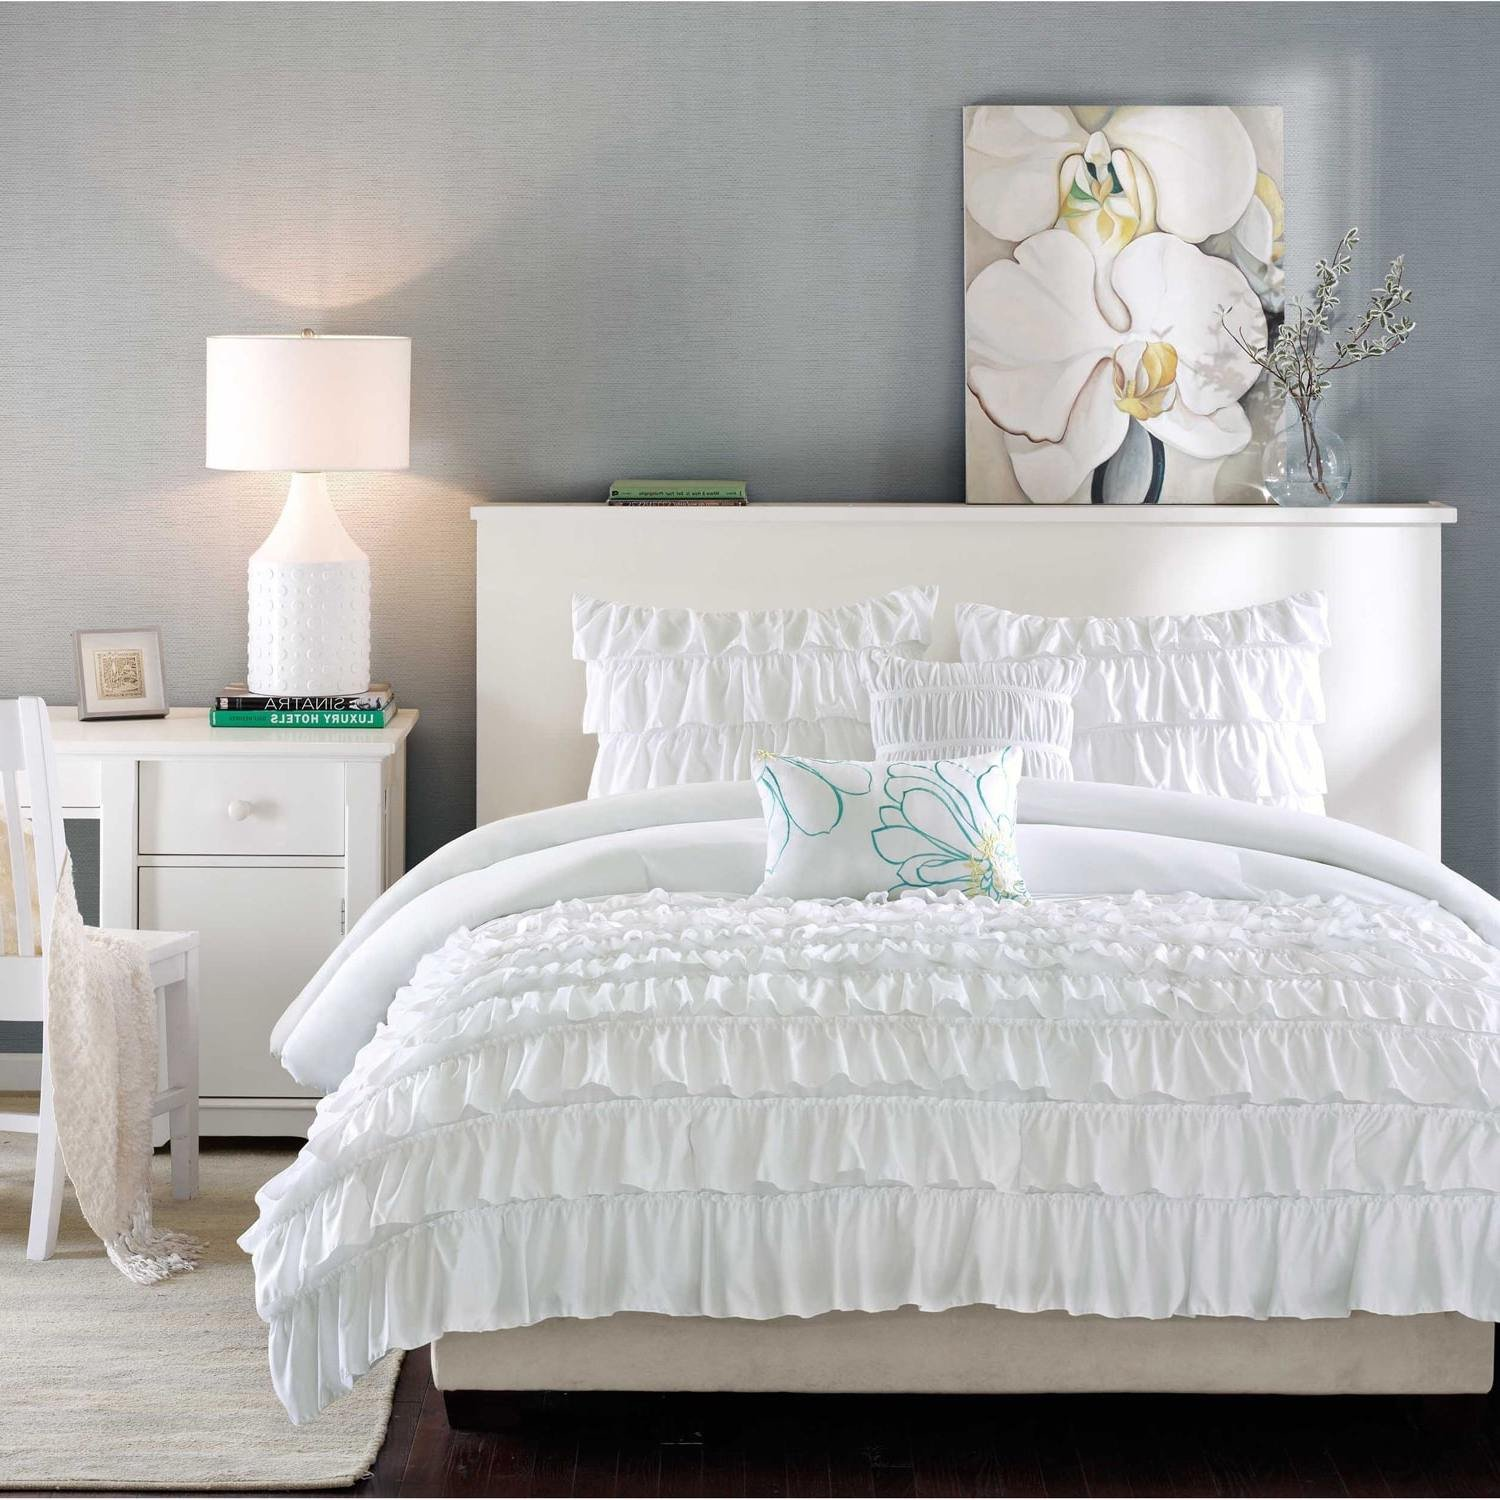 5 Piece White Ruffled Stripes Pattern Comforter Full Queen Set, Beautiful Chic Flowing Ruffles Lines Design, for Luxury Modern Bedrooms, Classic French Country Style, Neutral Solid Color, for Girls